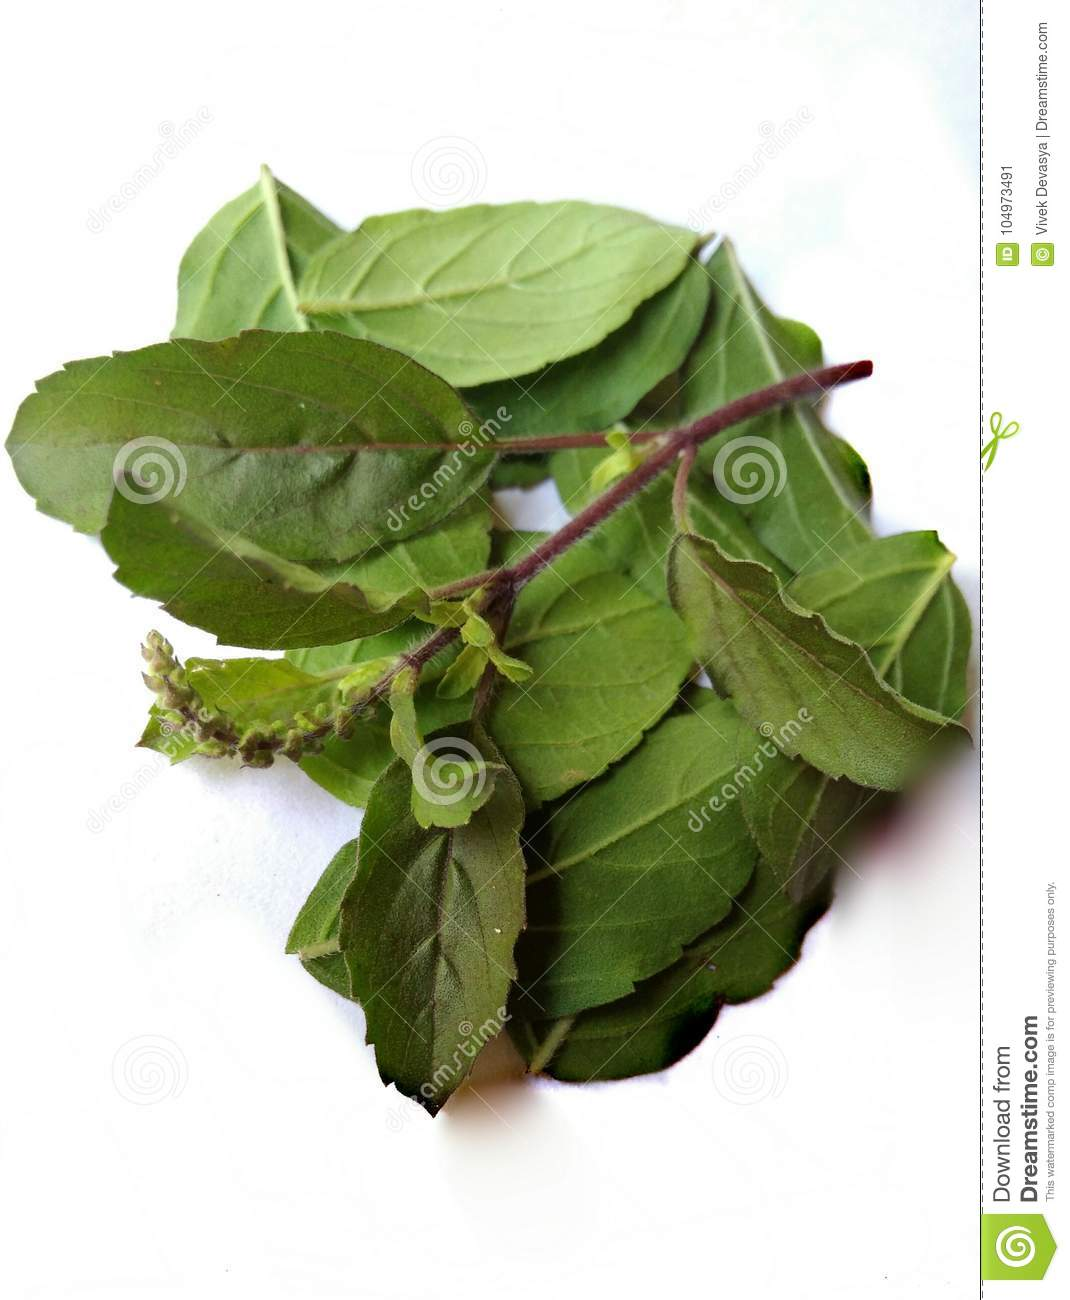 hight resolution of tulsi leaf or plant is the one of famous and effective ayurvedic plant it is the holy plant for hindus and it cures many health problems